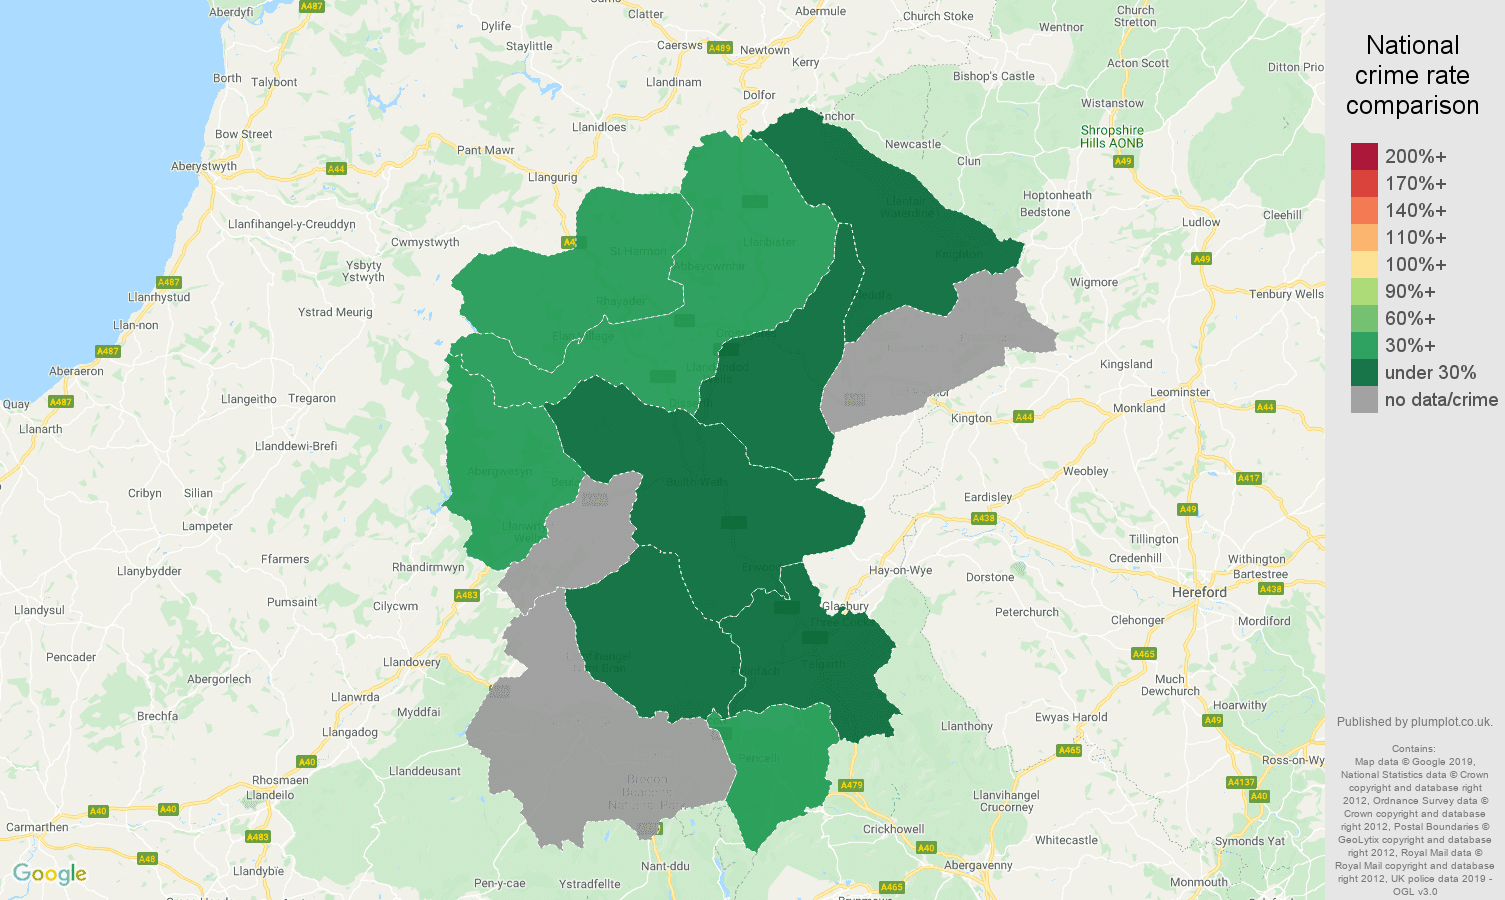 Llandrindod Wells shoplifting crime rate comparison map